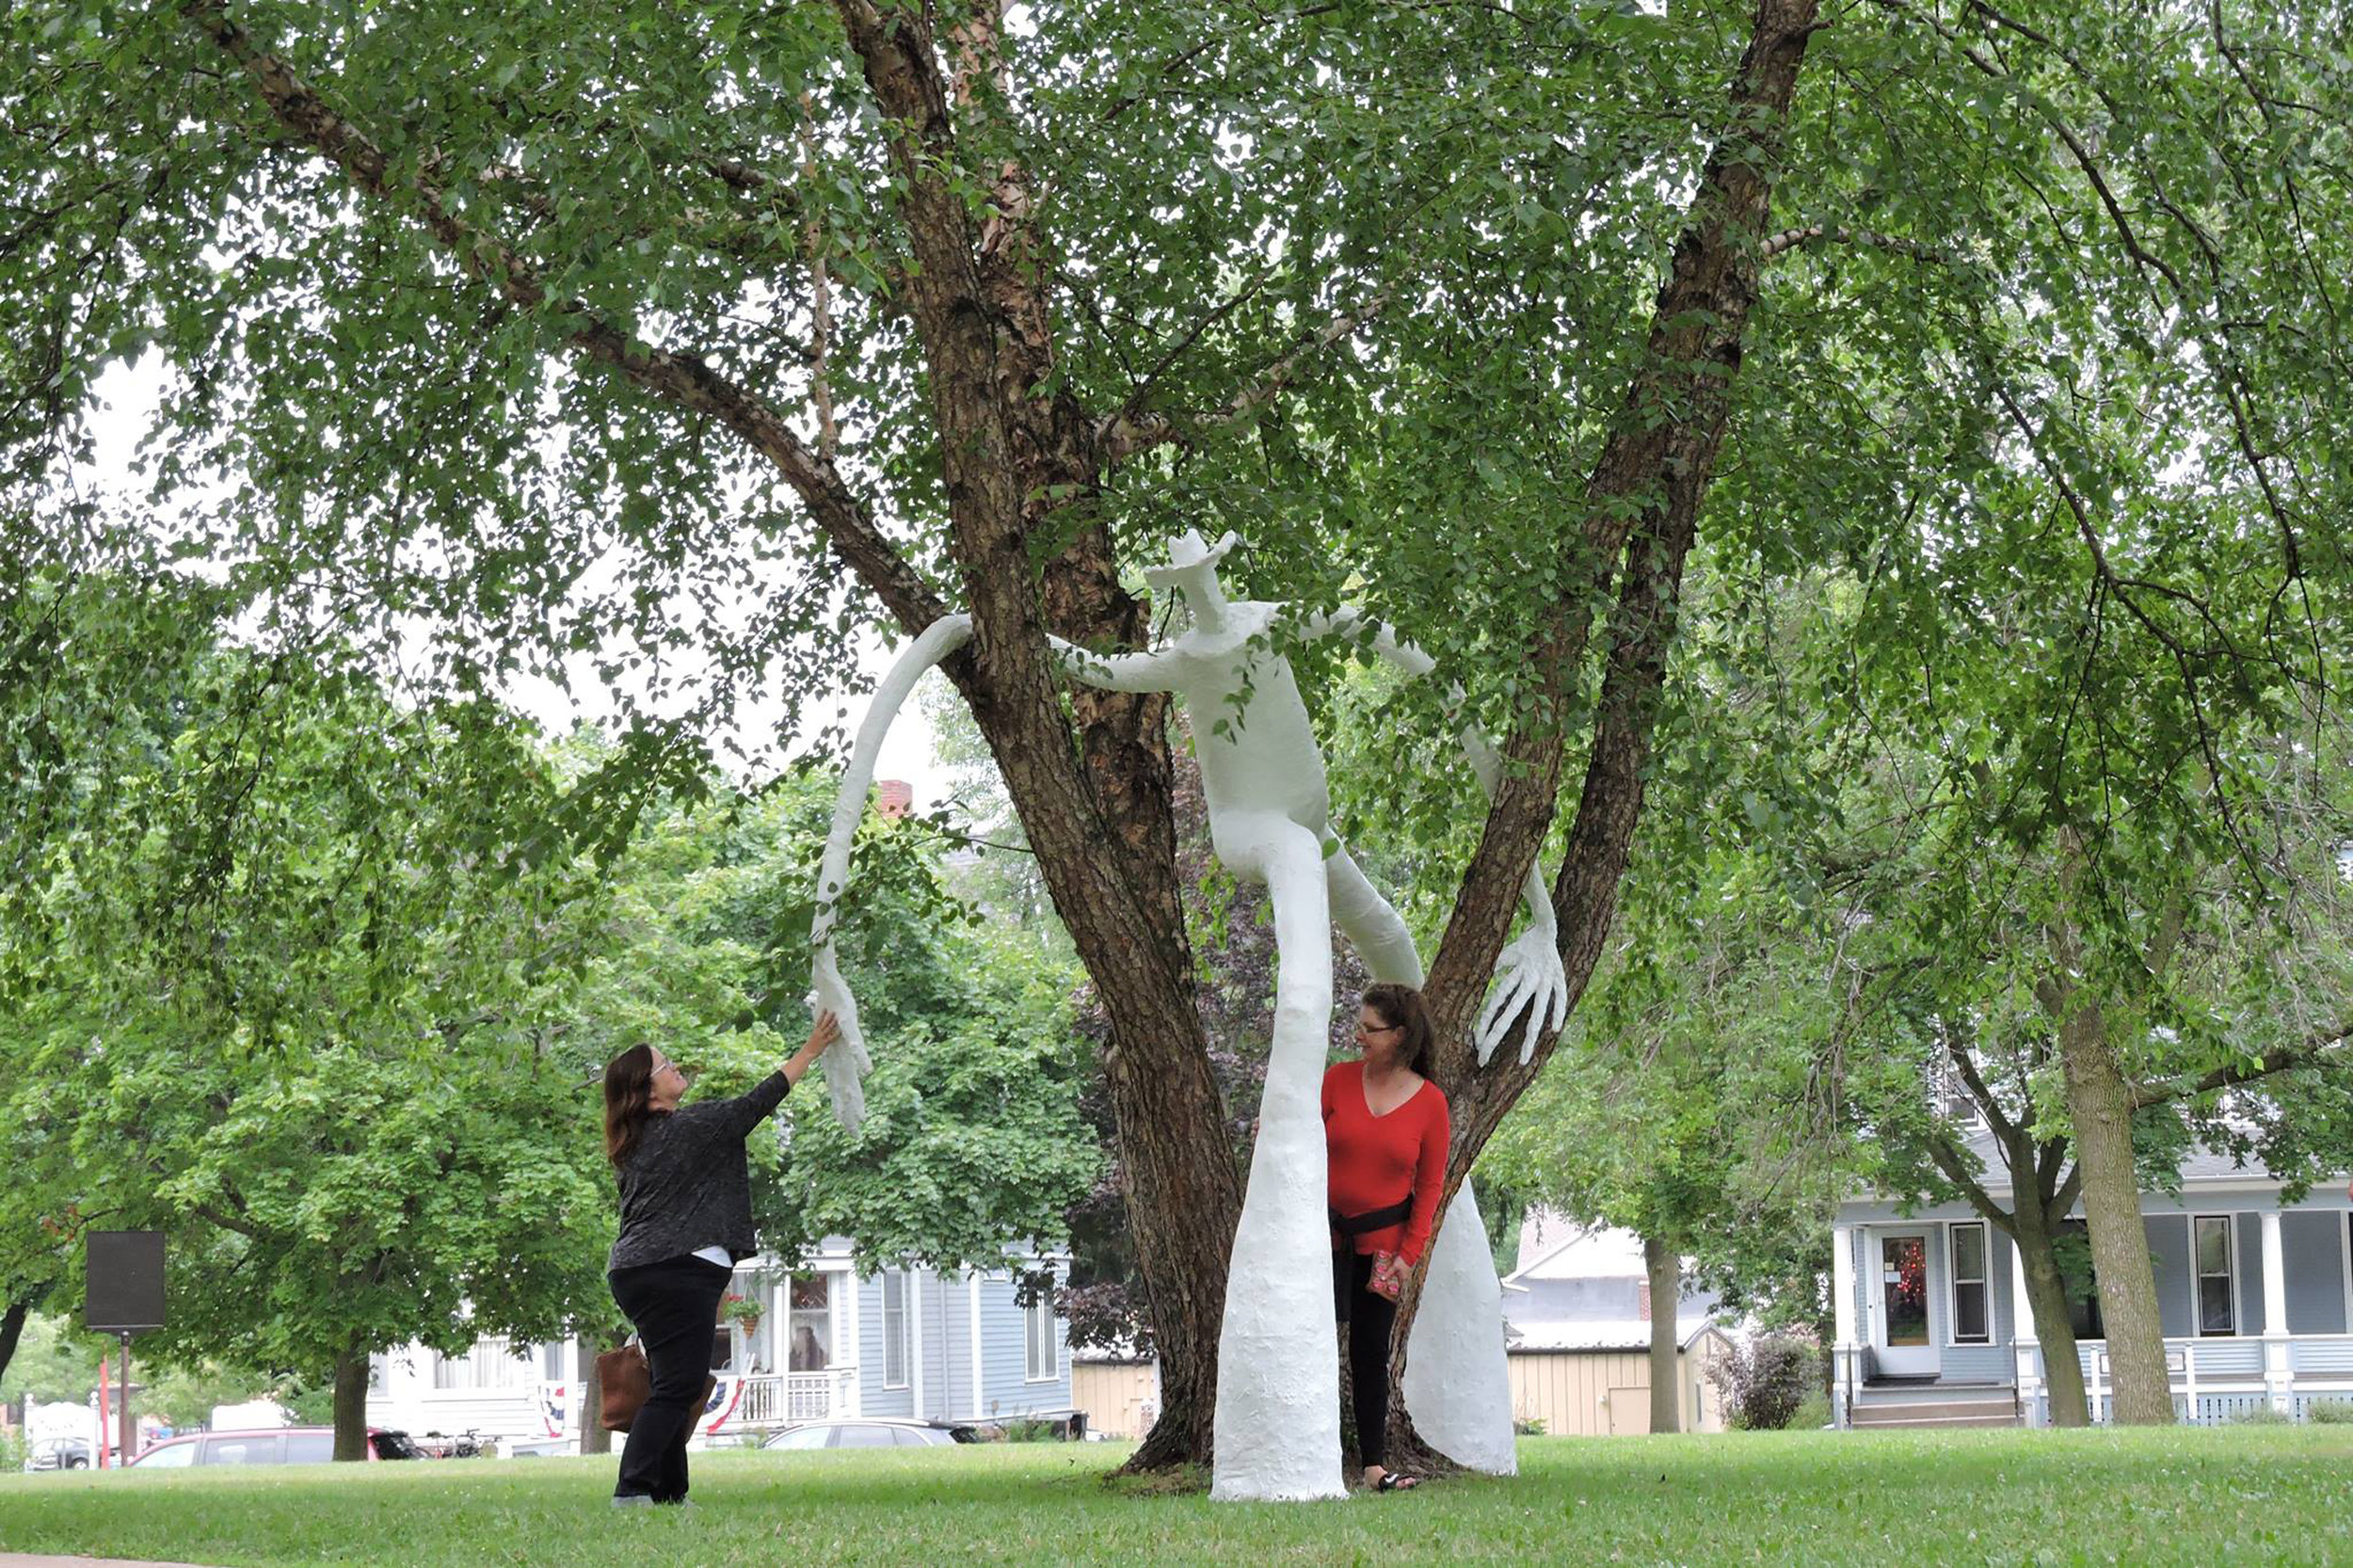 July-October 2016.  Cement, rebar, chicken wire, muslin, plywood, & latex paint.  Five sculptures of varying heights (12-18ft tall).  Public art commission made possible by Reedsburg ArtsLink.